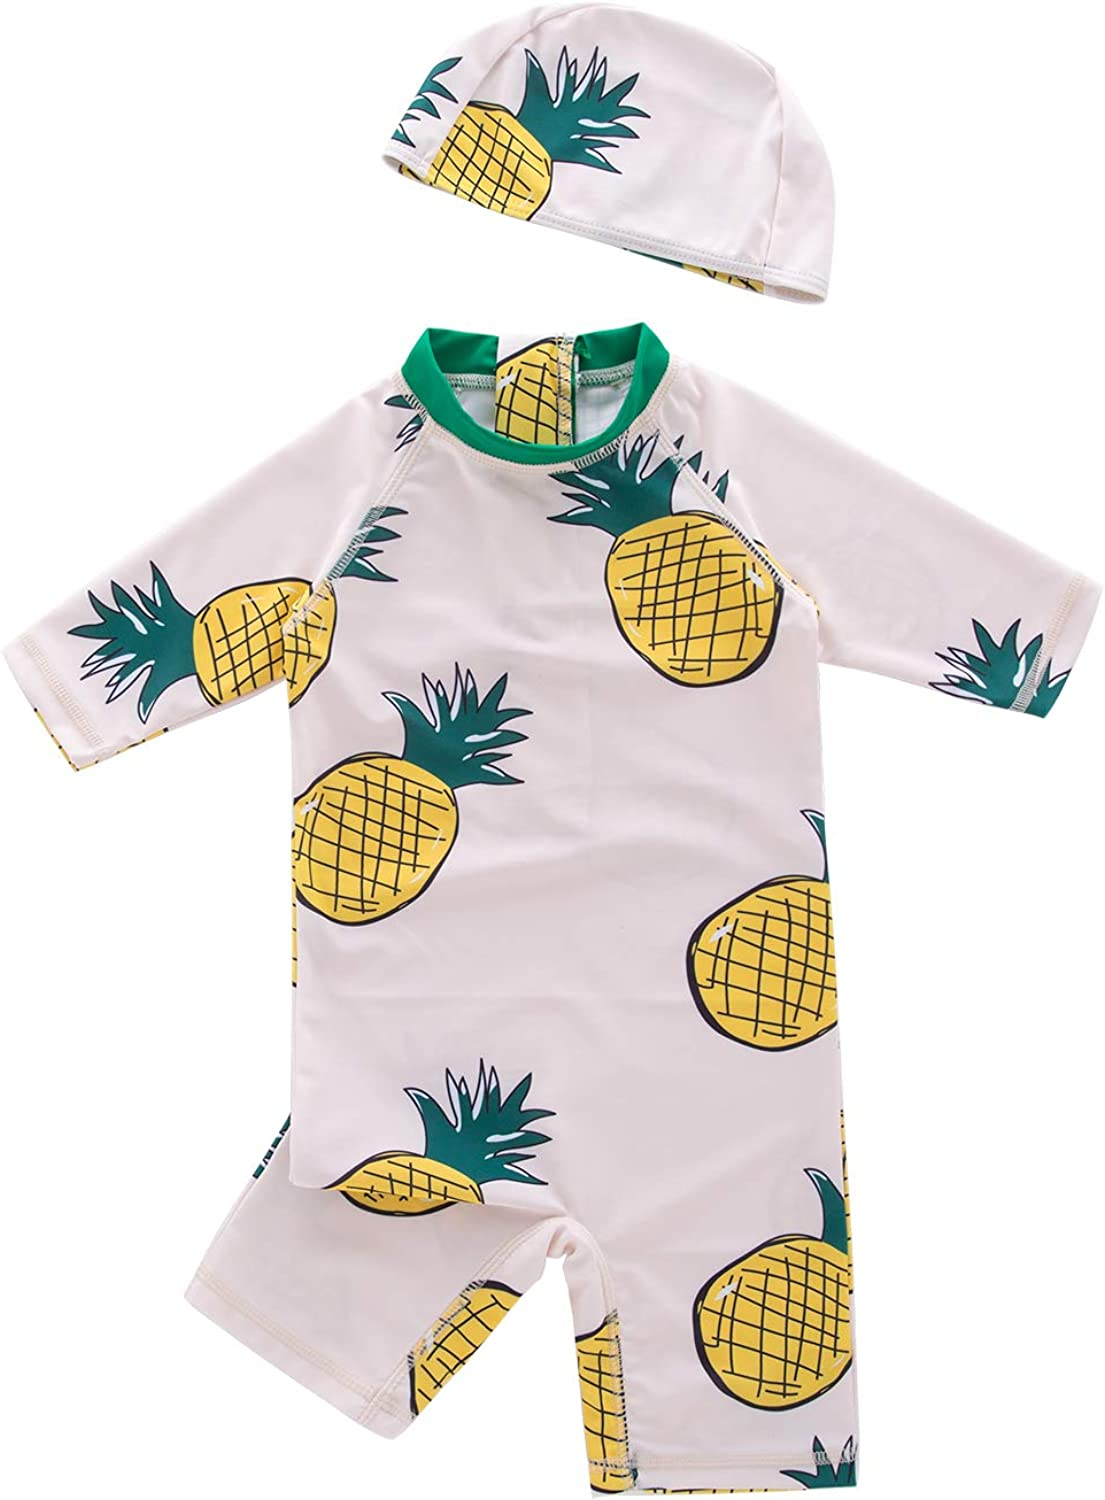 LXKIKMM Baby Toddler Kids Max 66% OFF Boys and Girs Protection Slee Ranking TOP2 Sun Long